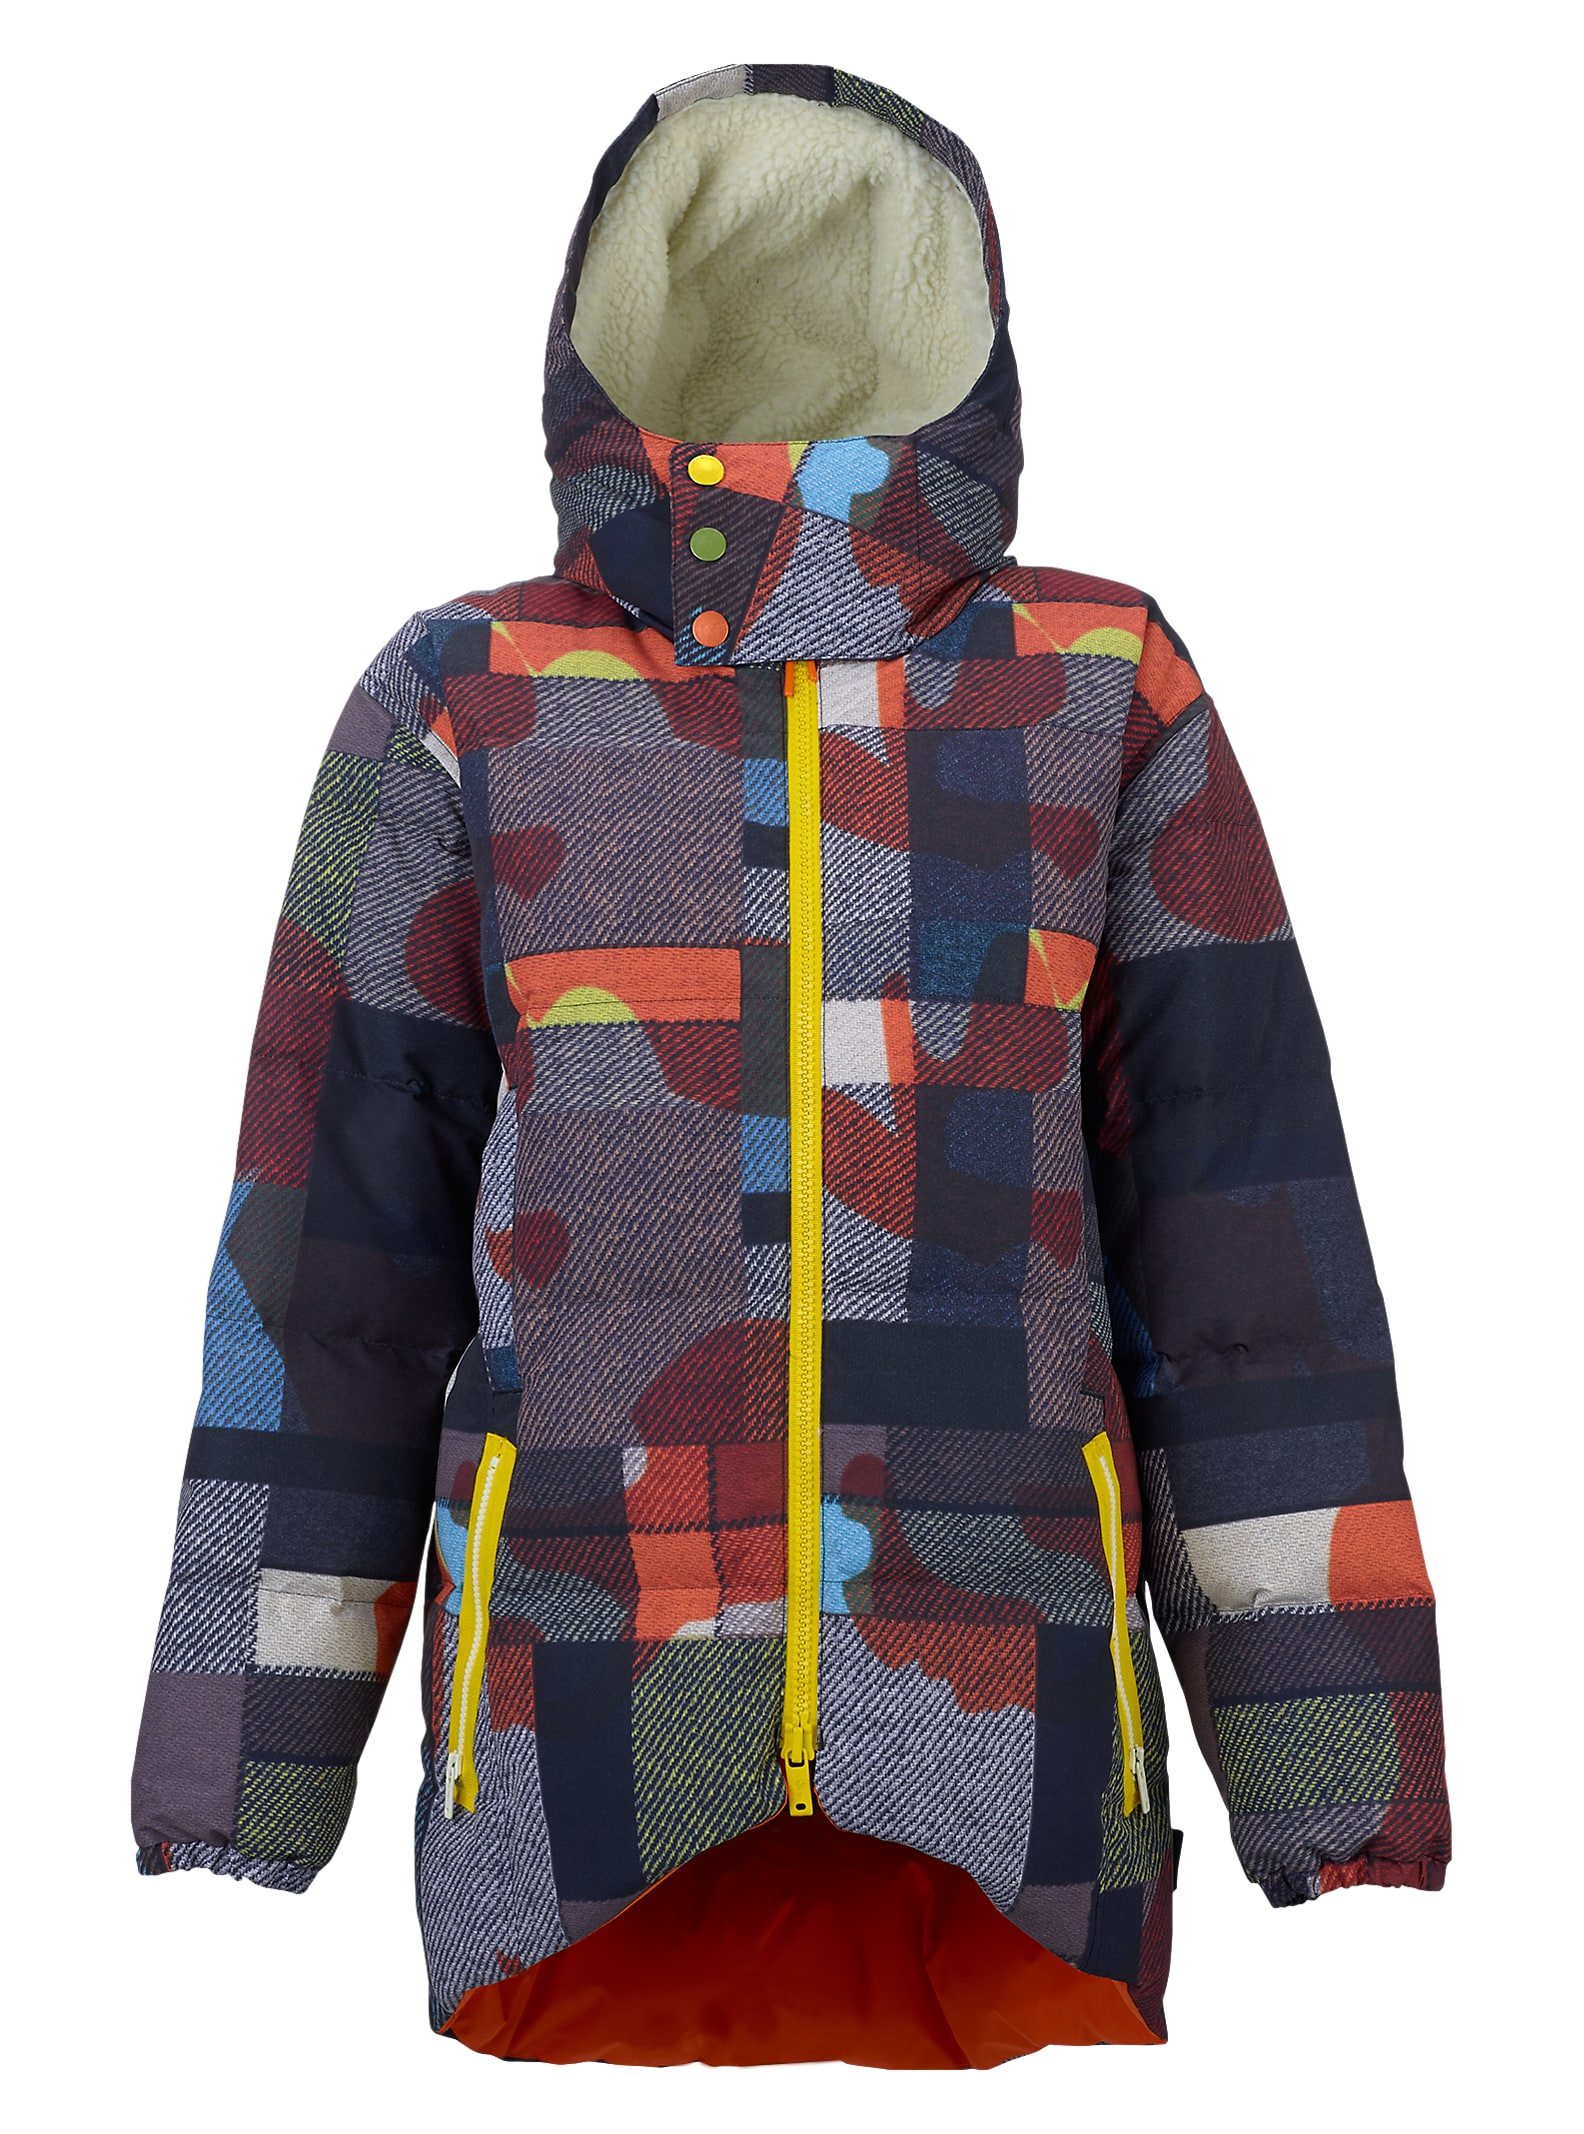 L.A.M.B. x Burton Bolan Down Jacket shown in Camo Plaid